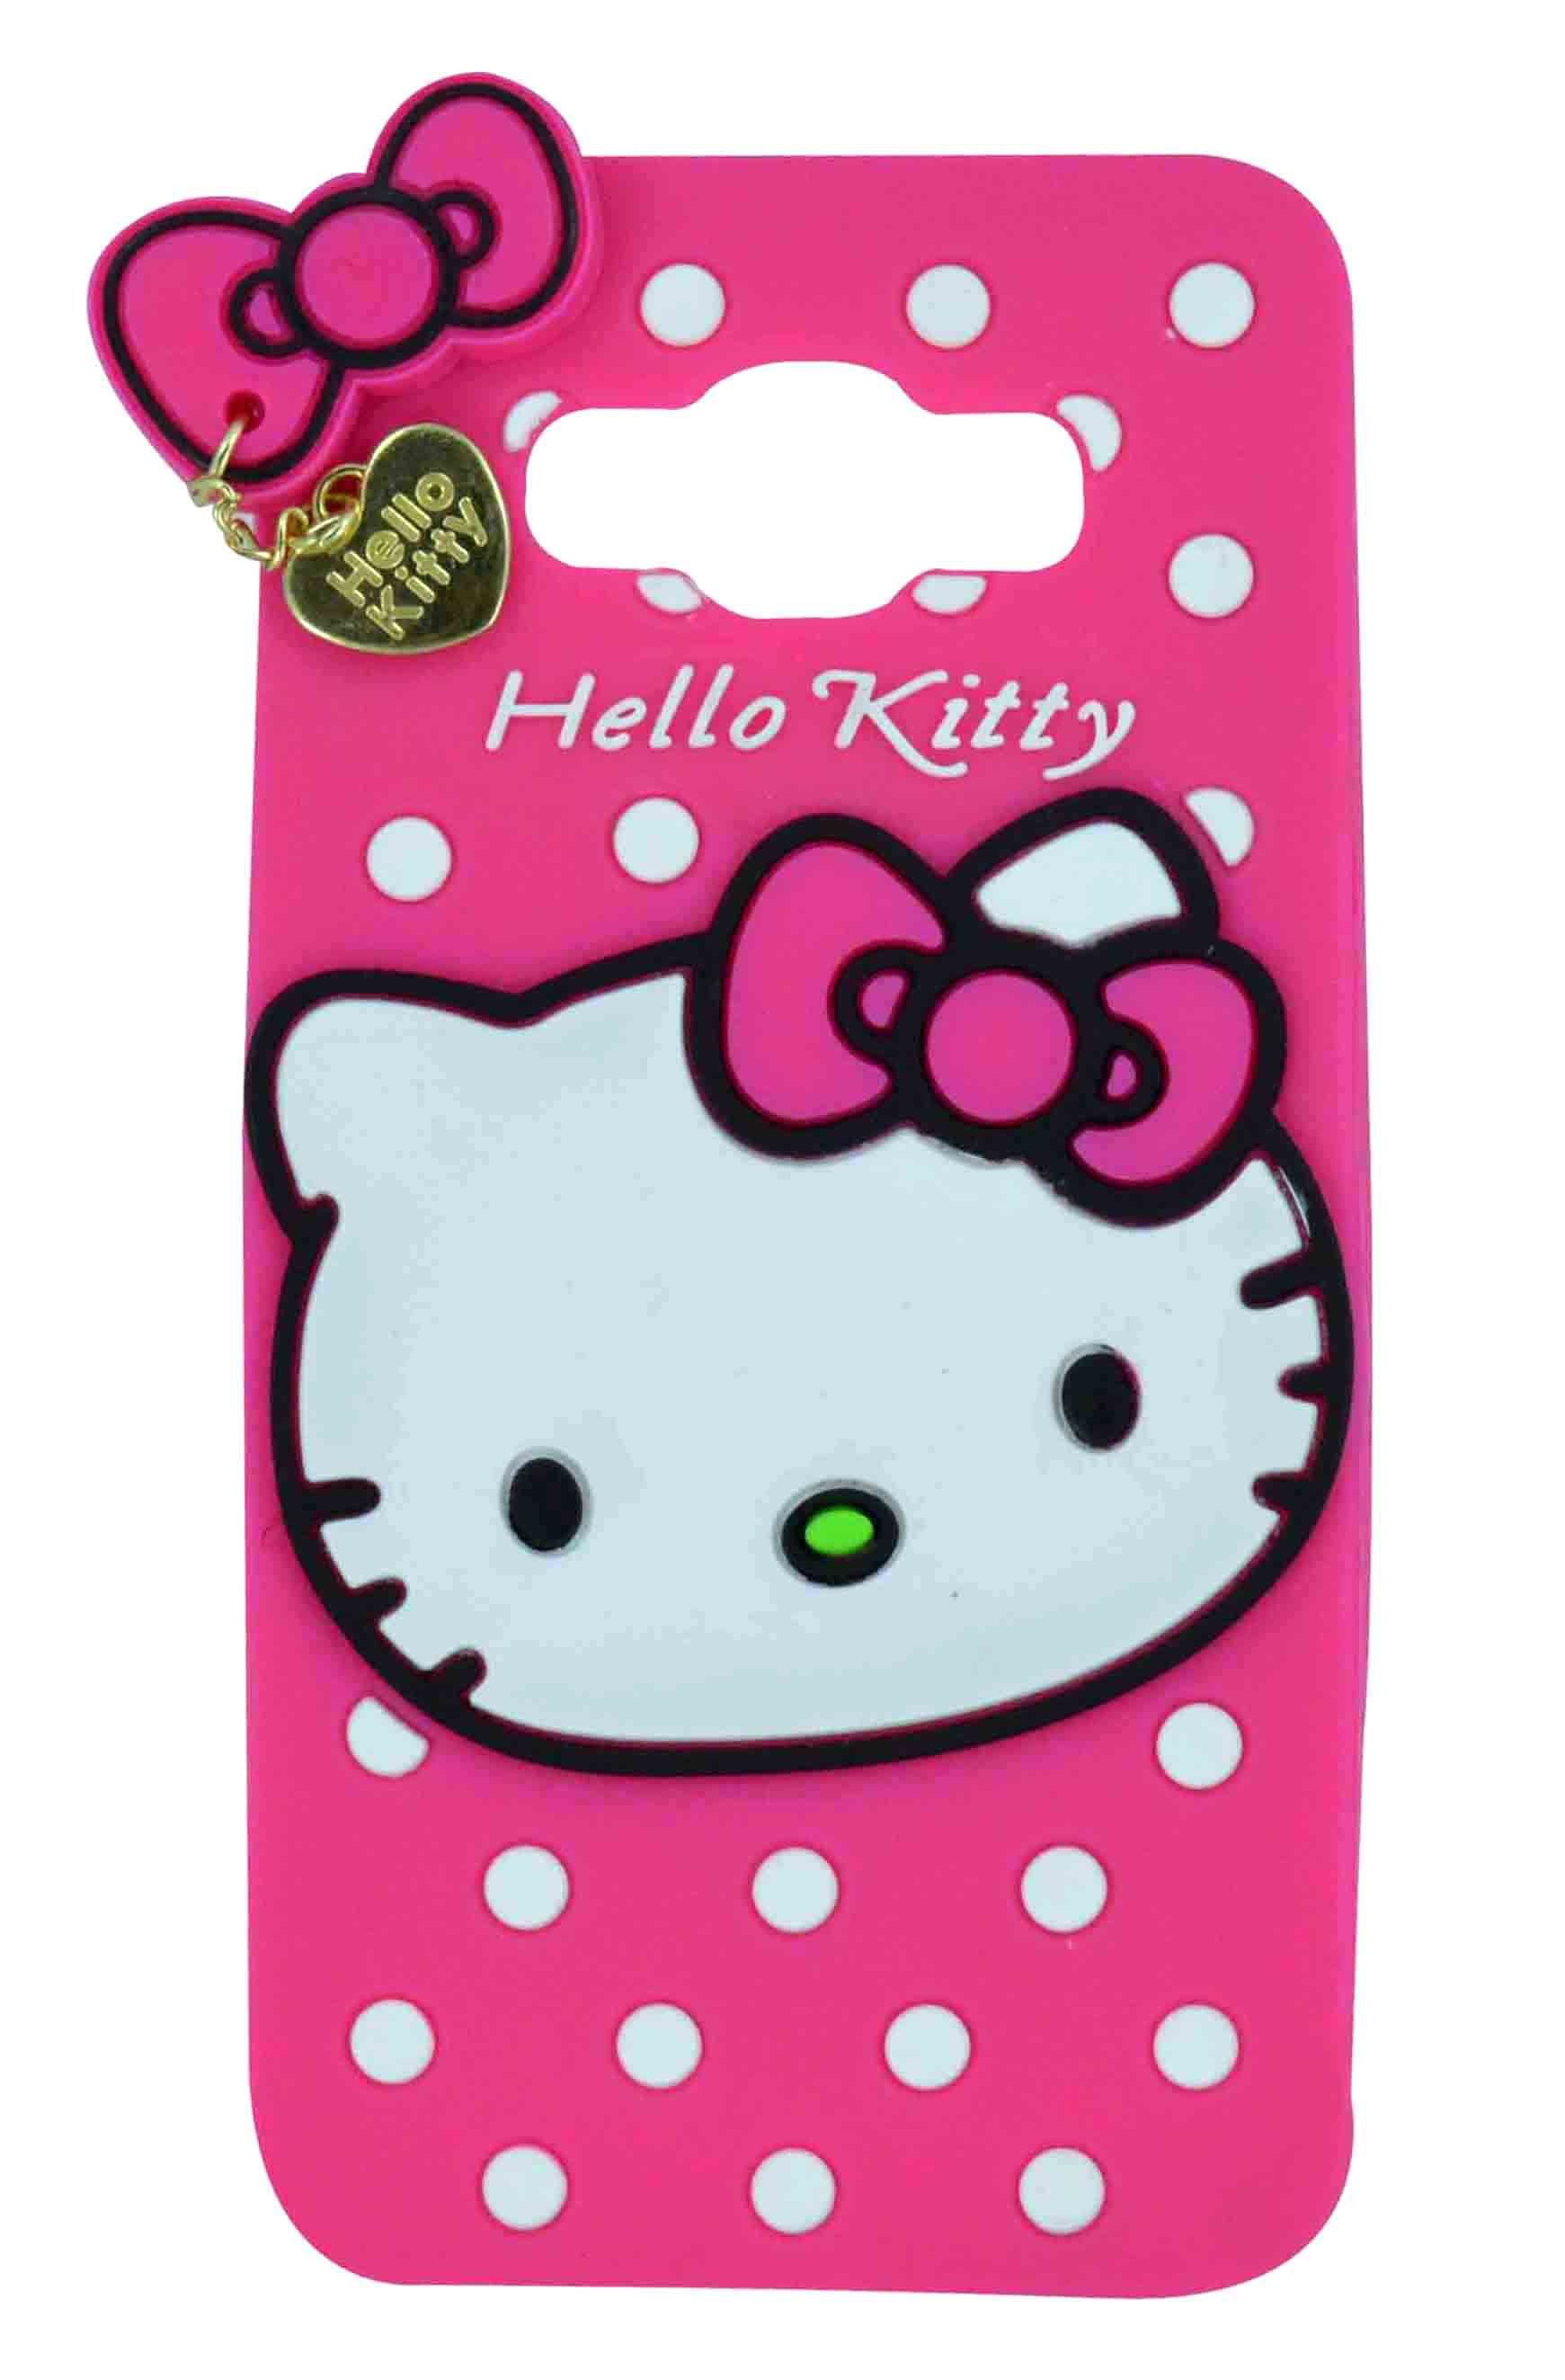 Style Imagine 3D Designer Hello Kitty Back Cover For Samsung Galaxy J5 2016 Pink